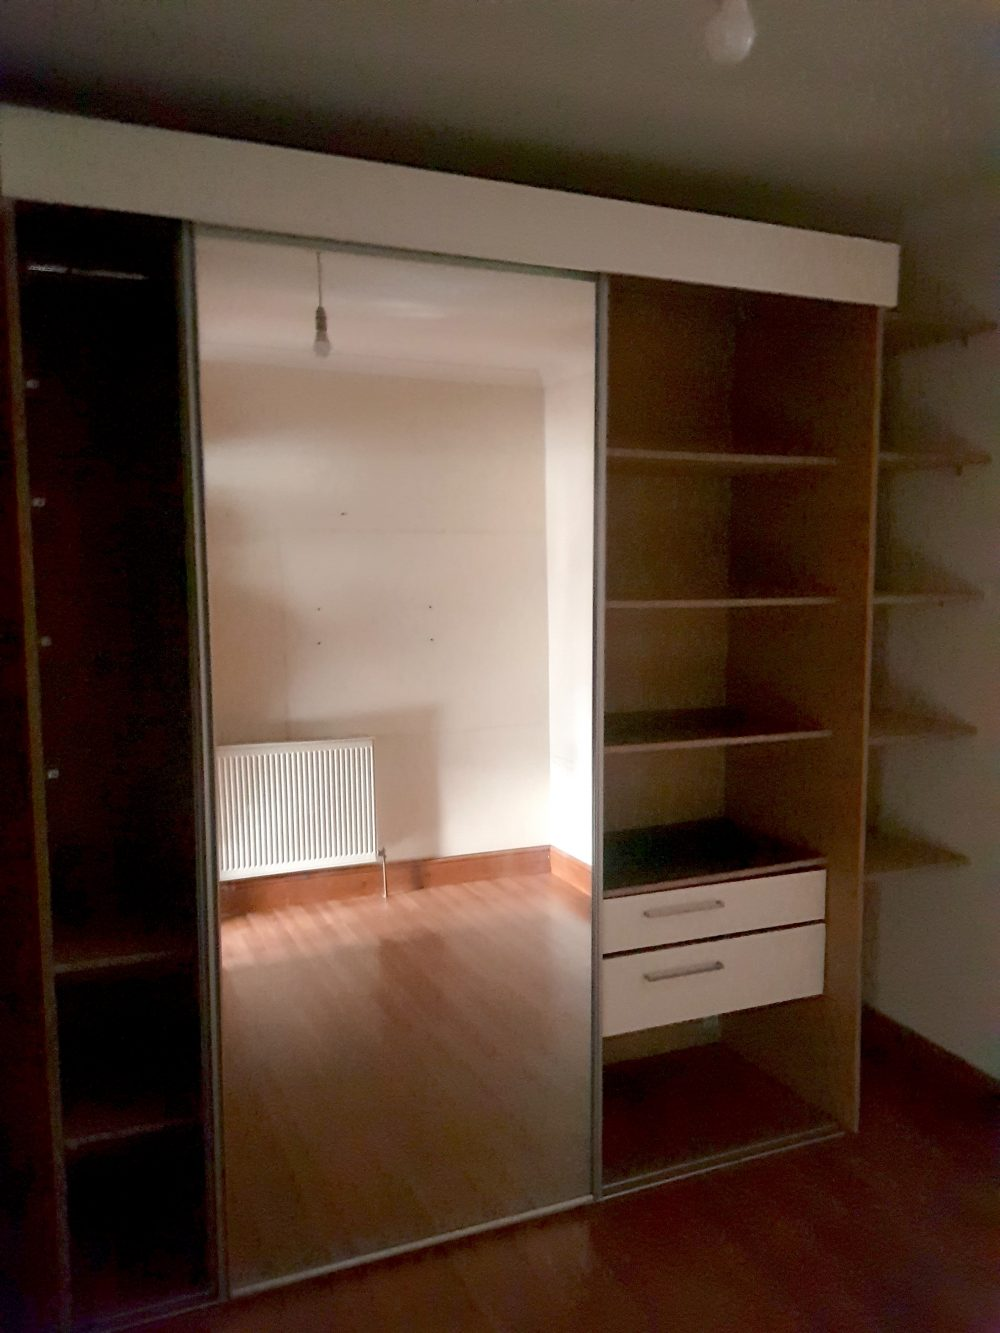 2 Bed Flat to rent in N15 Manor House Pic 9